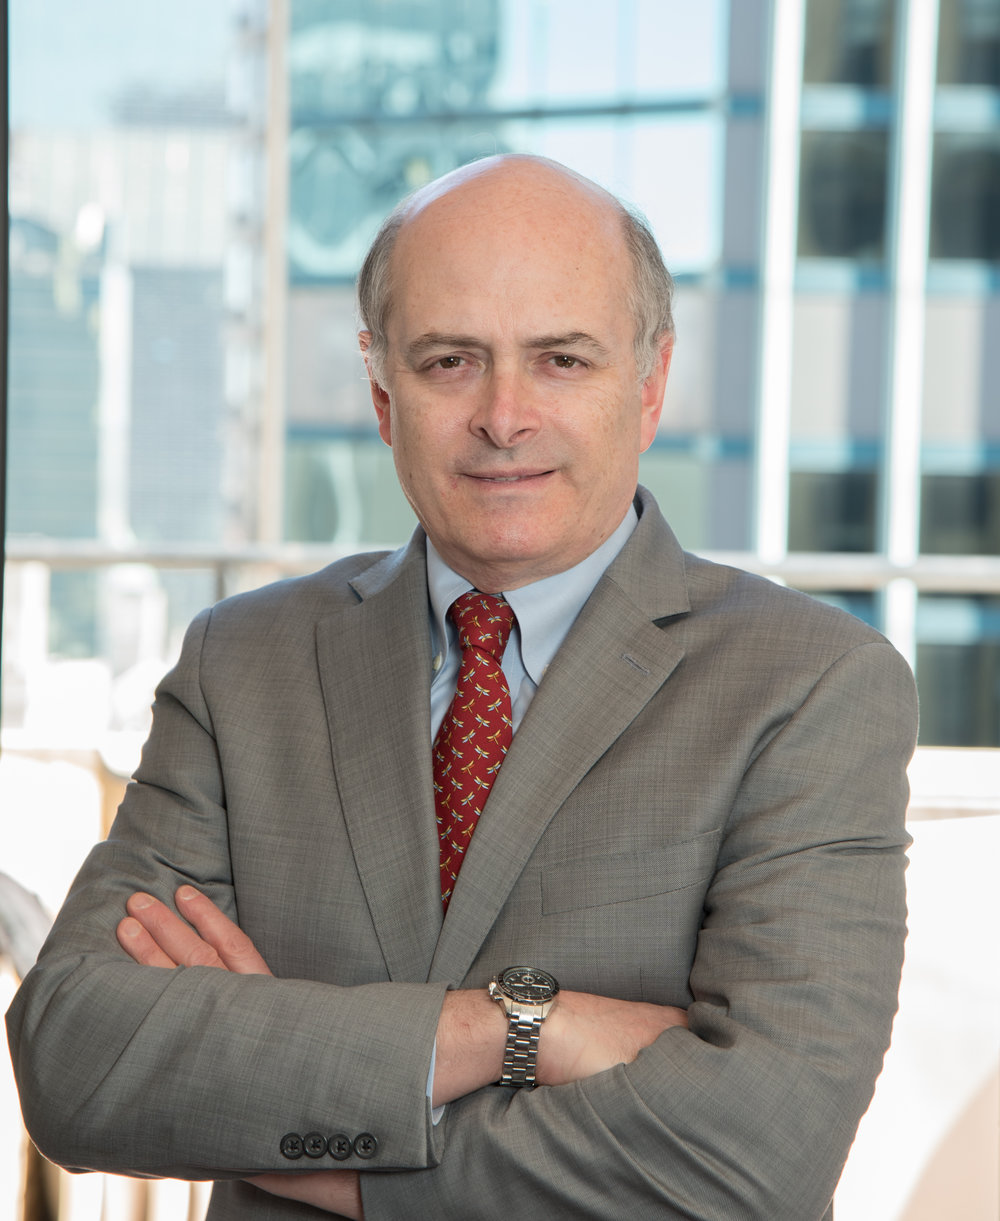 James E. Schwartz - James E. Schwartz, a partner of the firm, concentrates his practice in the area of commercial litigation, with an emphasis on real estate related disputes.His clients include real estate brokerage firms, institutional and private landlords and real estate management concerns, condominium and cooperative associations, title insurance underwriters and high net worth individuals. Mr. Schwartz has vast experience successfully litigating complex commercial matters at both the trial and appellate levels.Prior to joining the Firm, Mr. Schwartz was for many years a member of the law firm Carb Luria Cook & Kufeld LLP in Manhattan.EDUCATIONMr. Schwartz received a Juris Doctor degree from the Duke University Law School and a Bachelor of Arts degree, cum laude, from the University of Pennsylvania.ADMISSIONMr. Schwartz is admitted to practice before the courts of the State of New York, the United States District Courts for the Southern and Eastern Districts of New York, and the United States Court of Appeals for the Second Circuit.